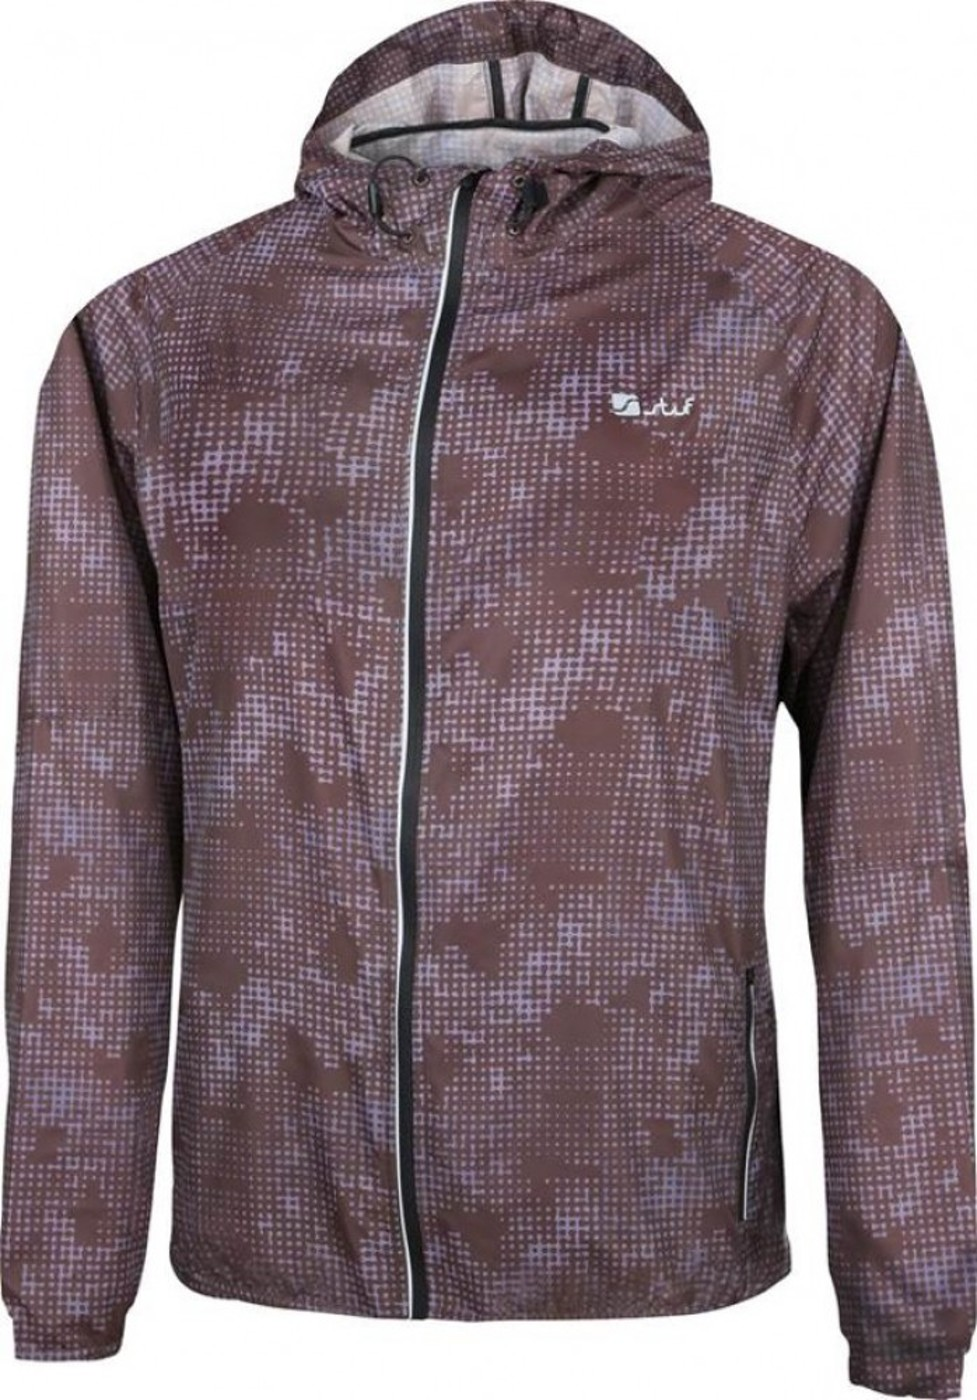 STUF WILL jacket printed - Herren